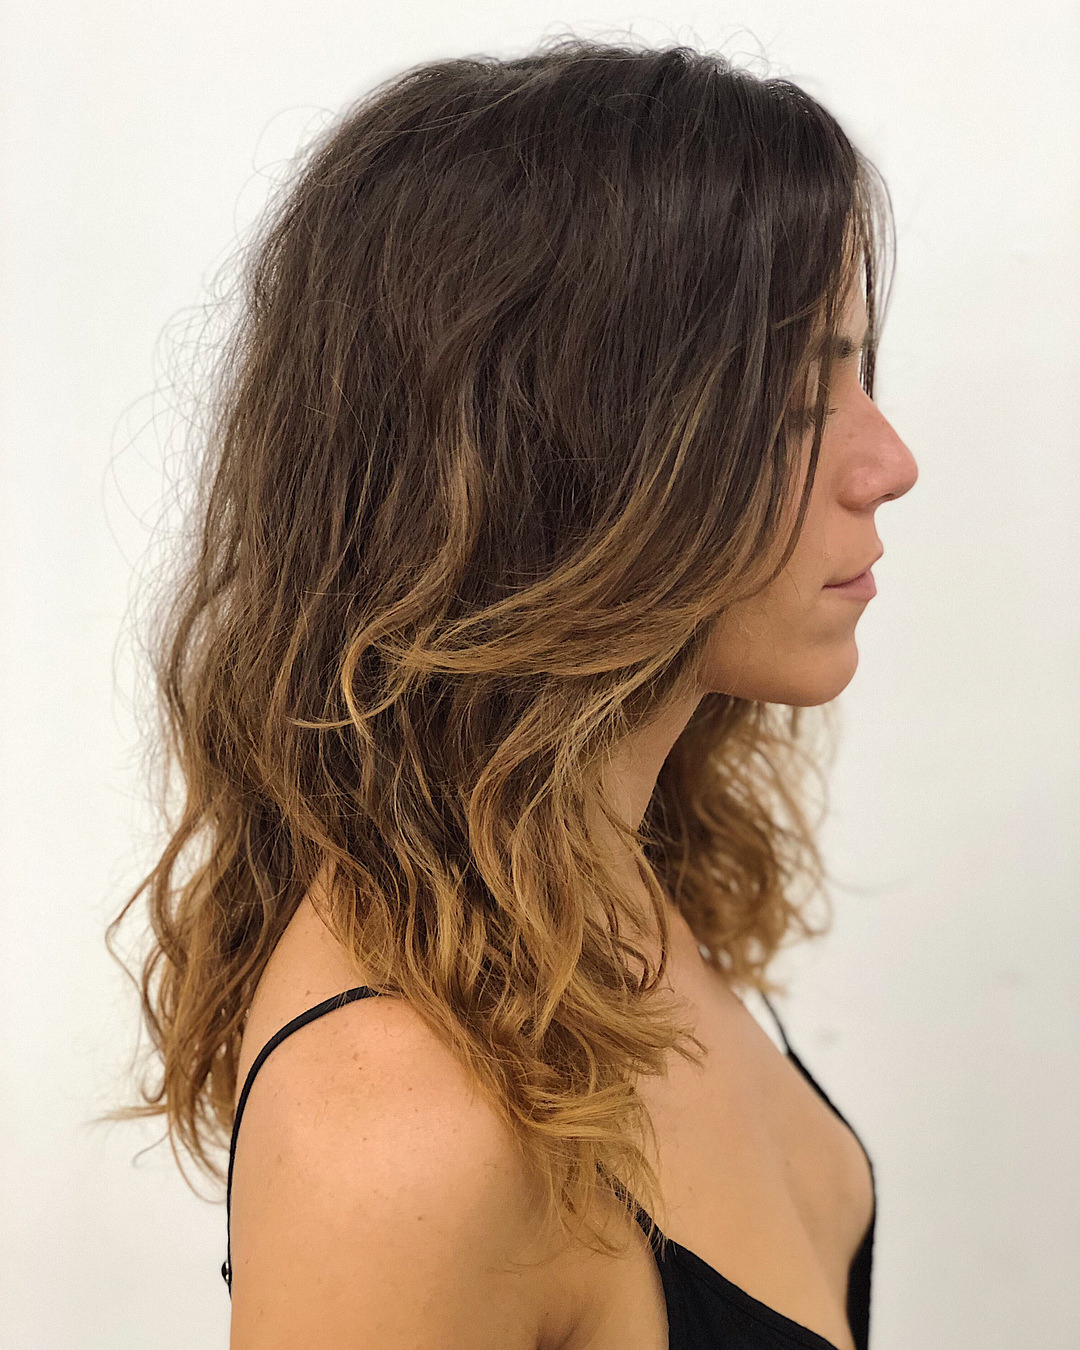 Preferred Shag Haircuts With Blunt Ends And Angled Layers Inside 125 Coolest Shag Haircuts For All Ages – Prochronism (Gallery 14 of 20)